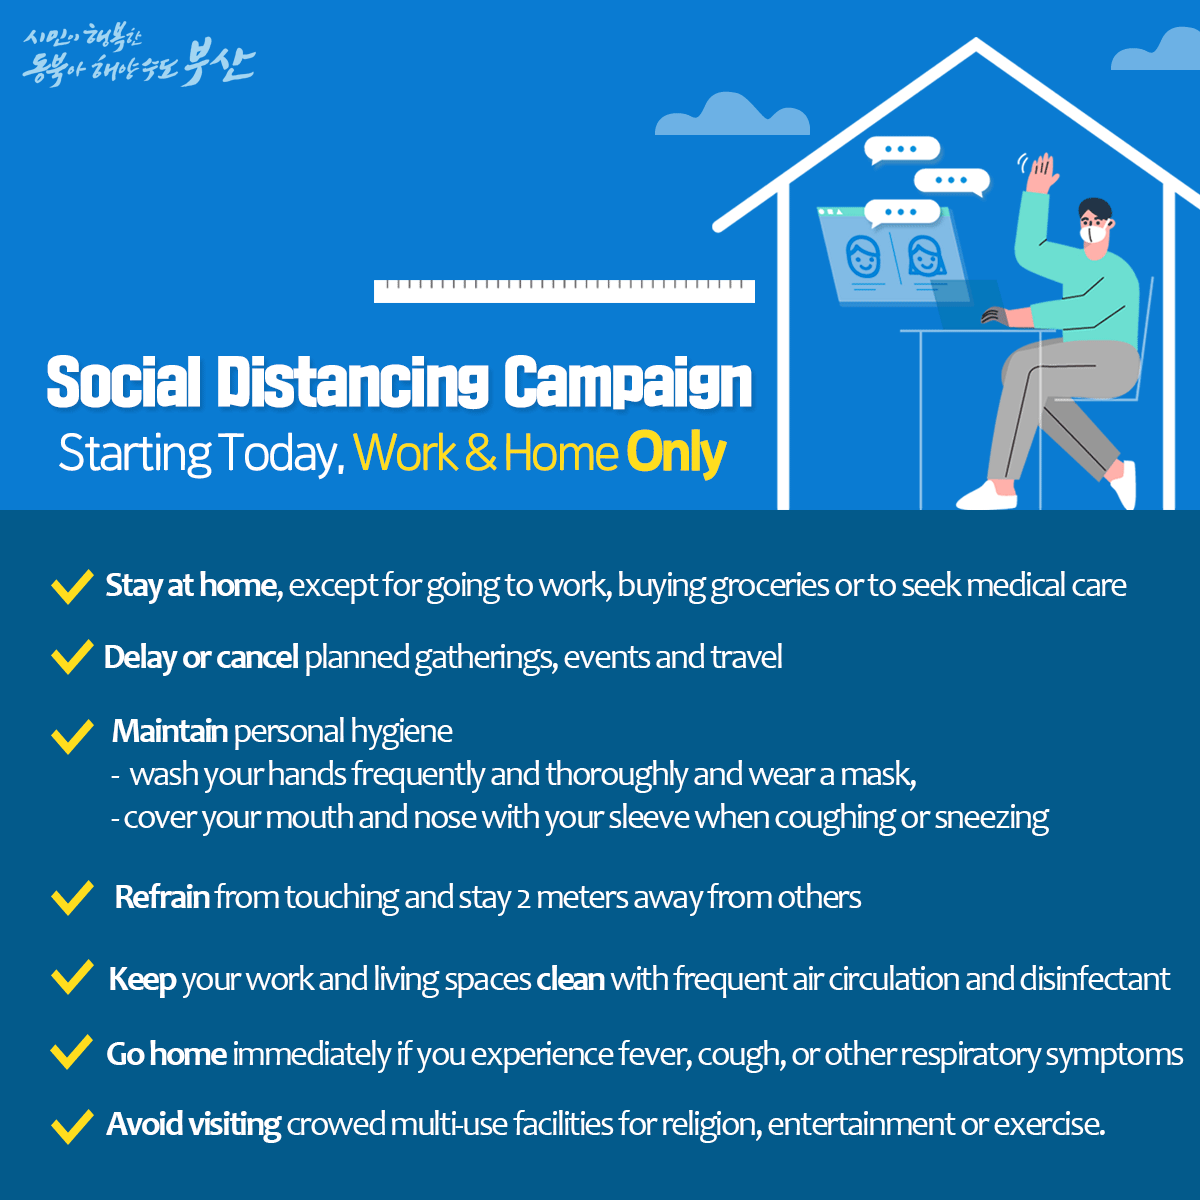 Social Distancing Campaign